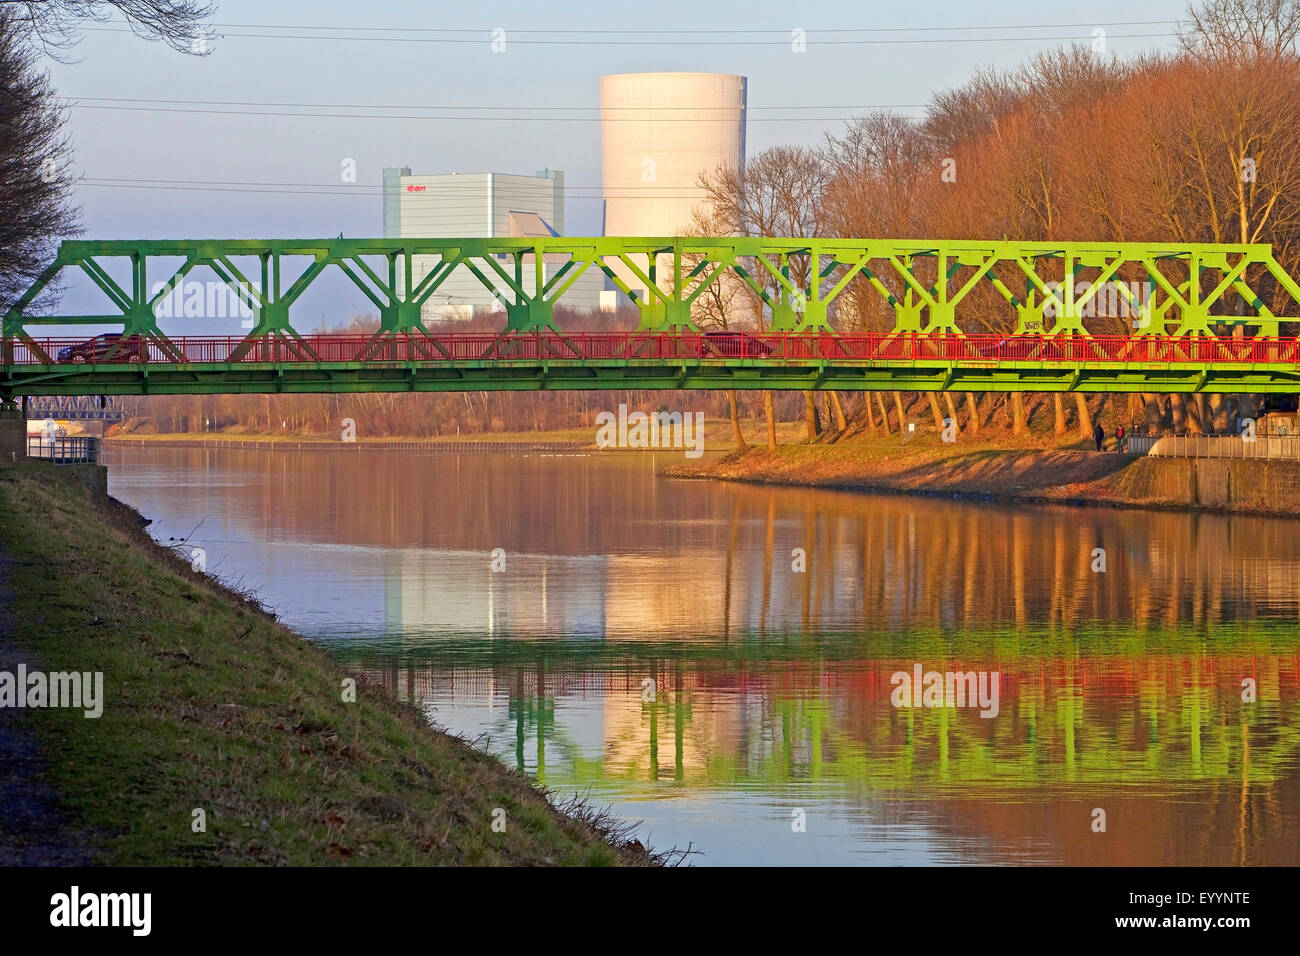 Lucas bridge and Dortmund Ems Canal, E.ON power plant in background, Germany, North Rhine-Westphalia, Ruhr Area, - Stock Image